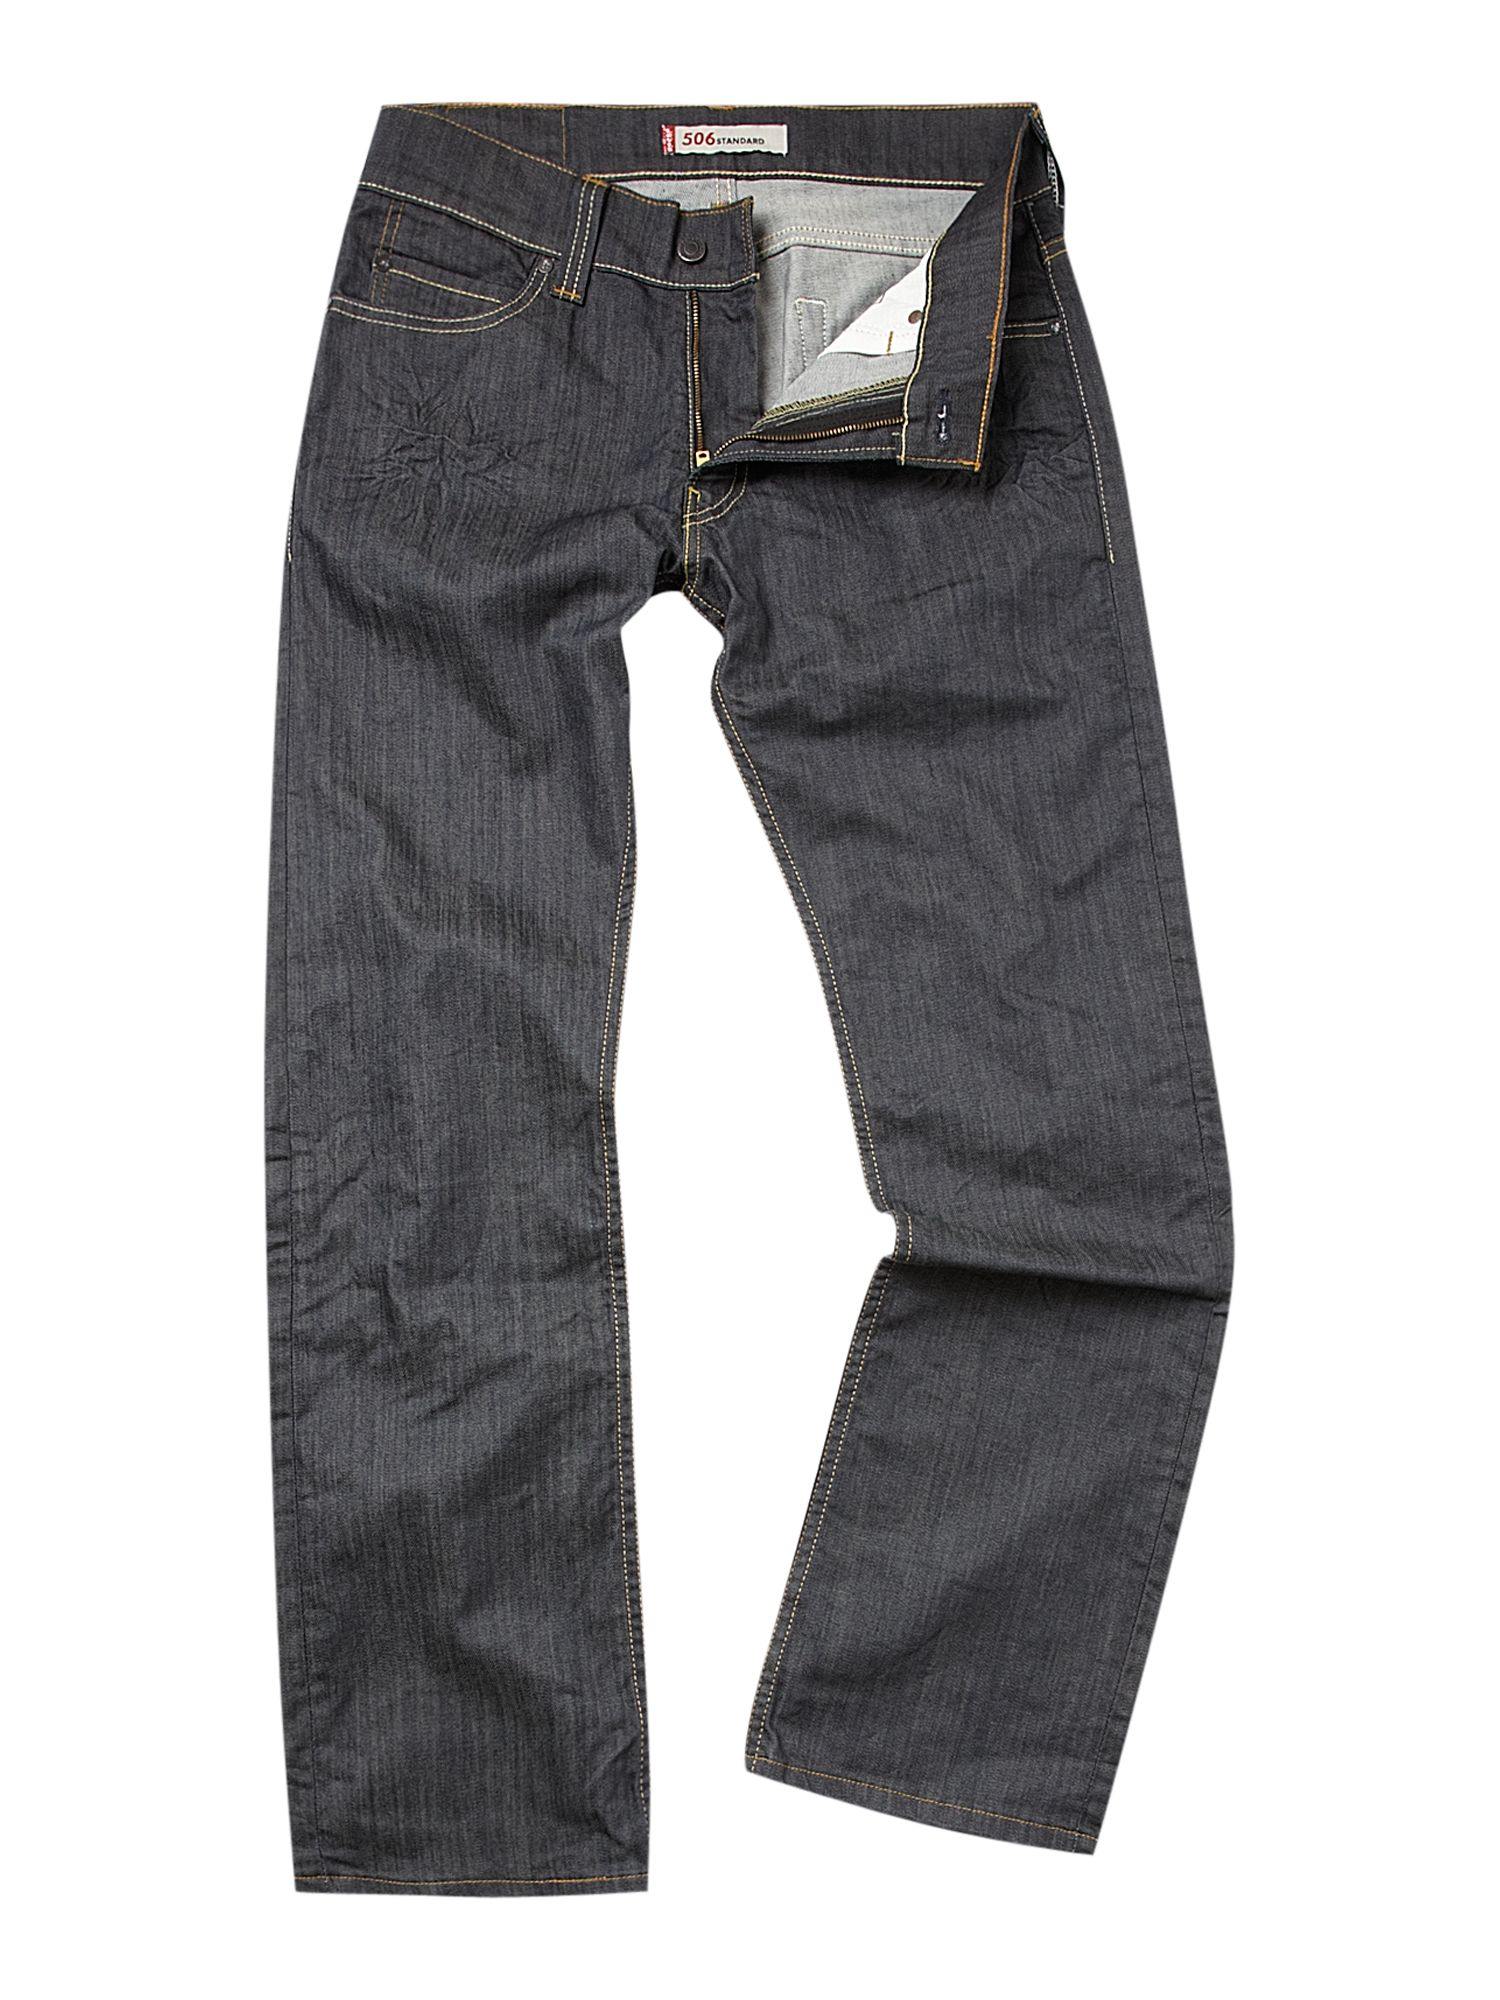 506 S Diamond Straight Jeans